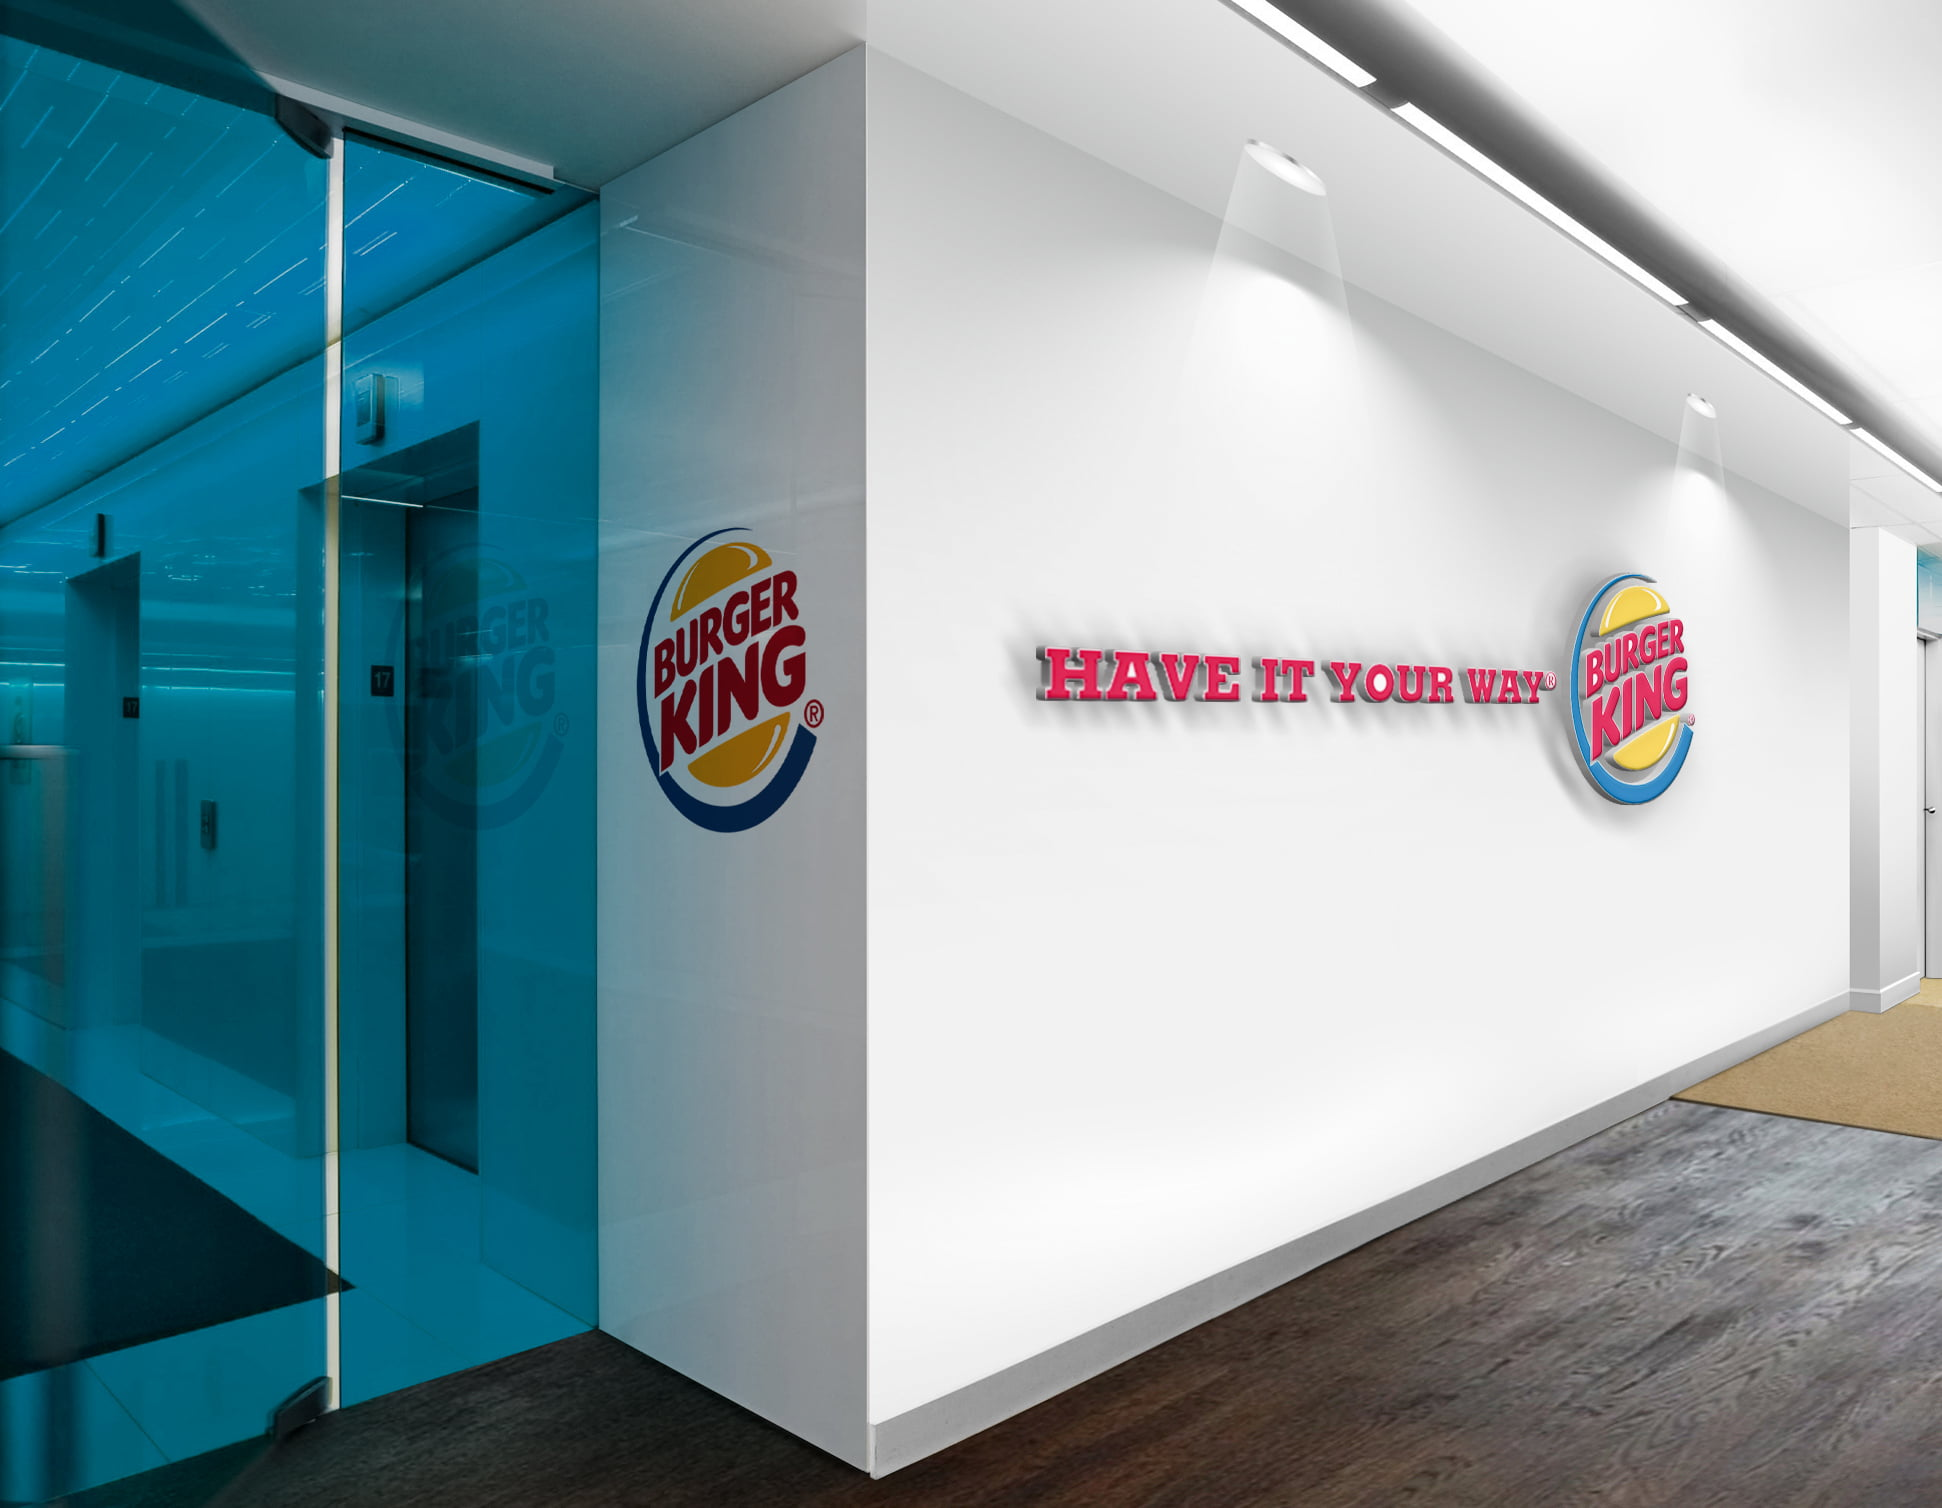 Burger-King-3D-Wall-Logo-&-Slogan-Mockup